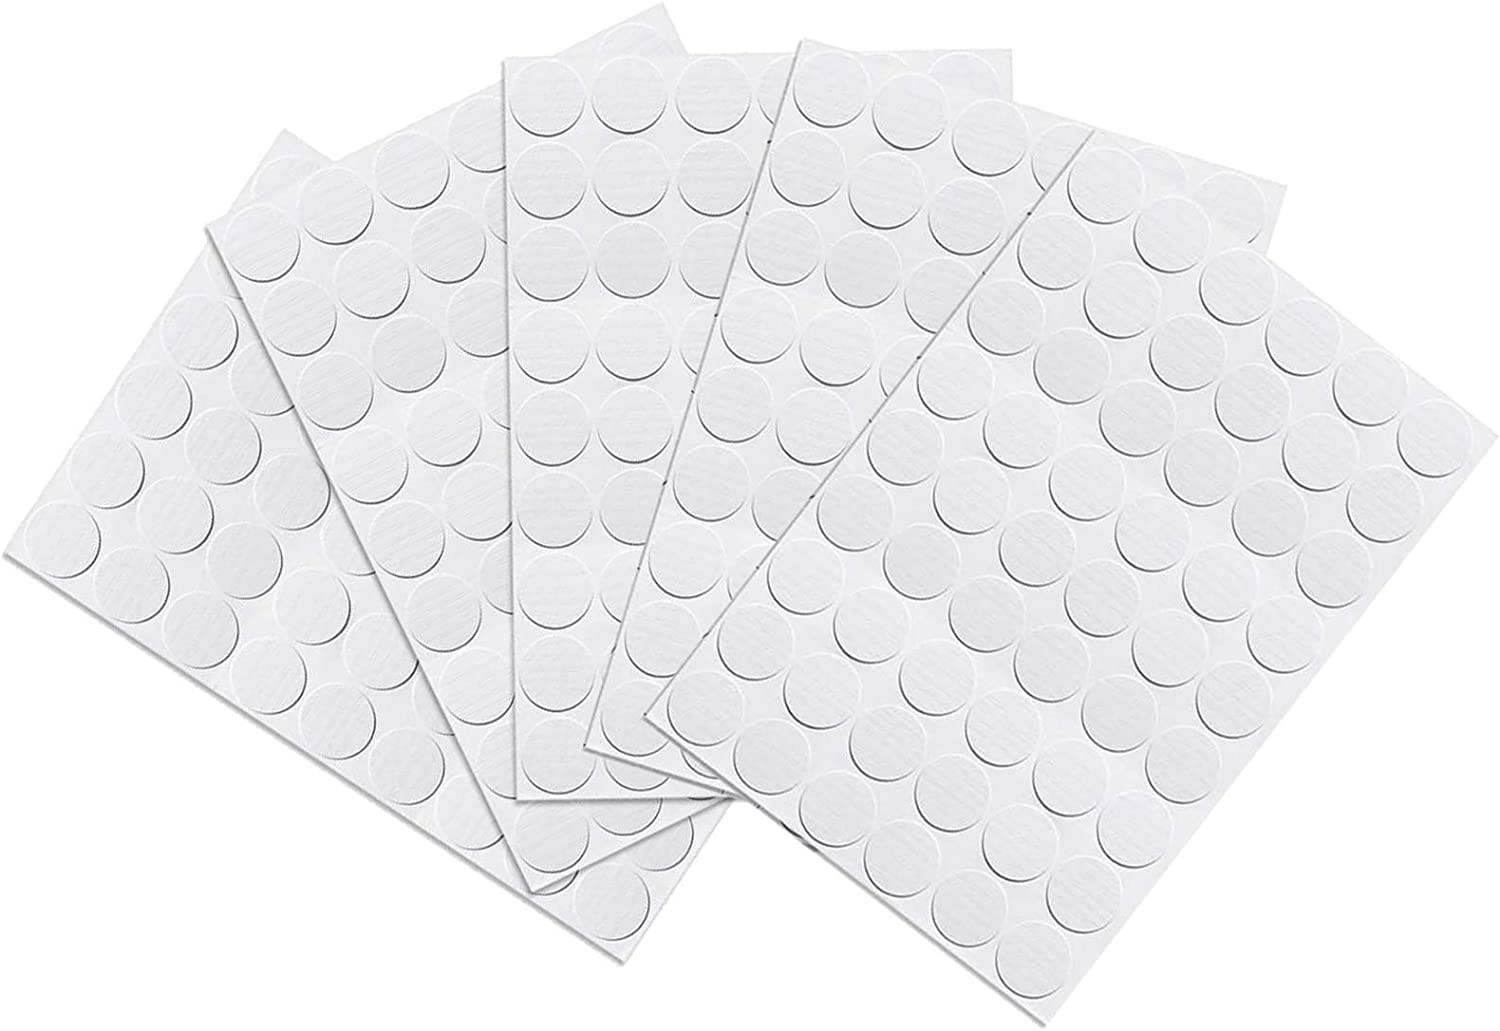 Screw Hole Covers Stickers, ECUDIS Plastic Self Adhesive Stickers for Wood Furniture Cabinet Shelve Plate, 21mm Dia 270 pcs in 5 Sheet White